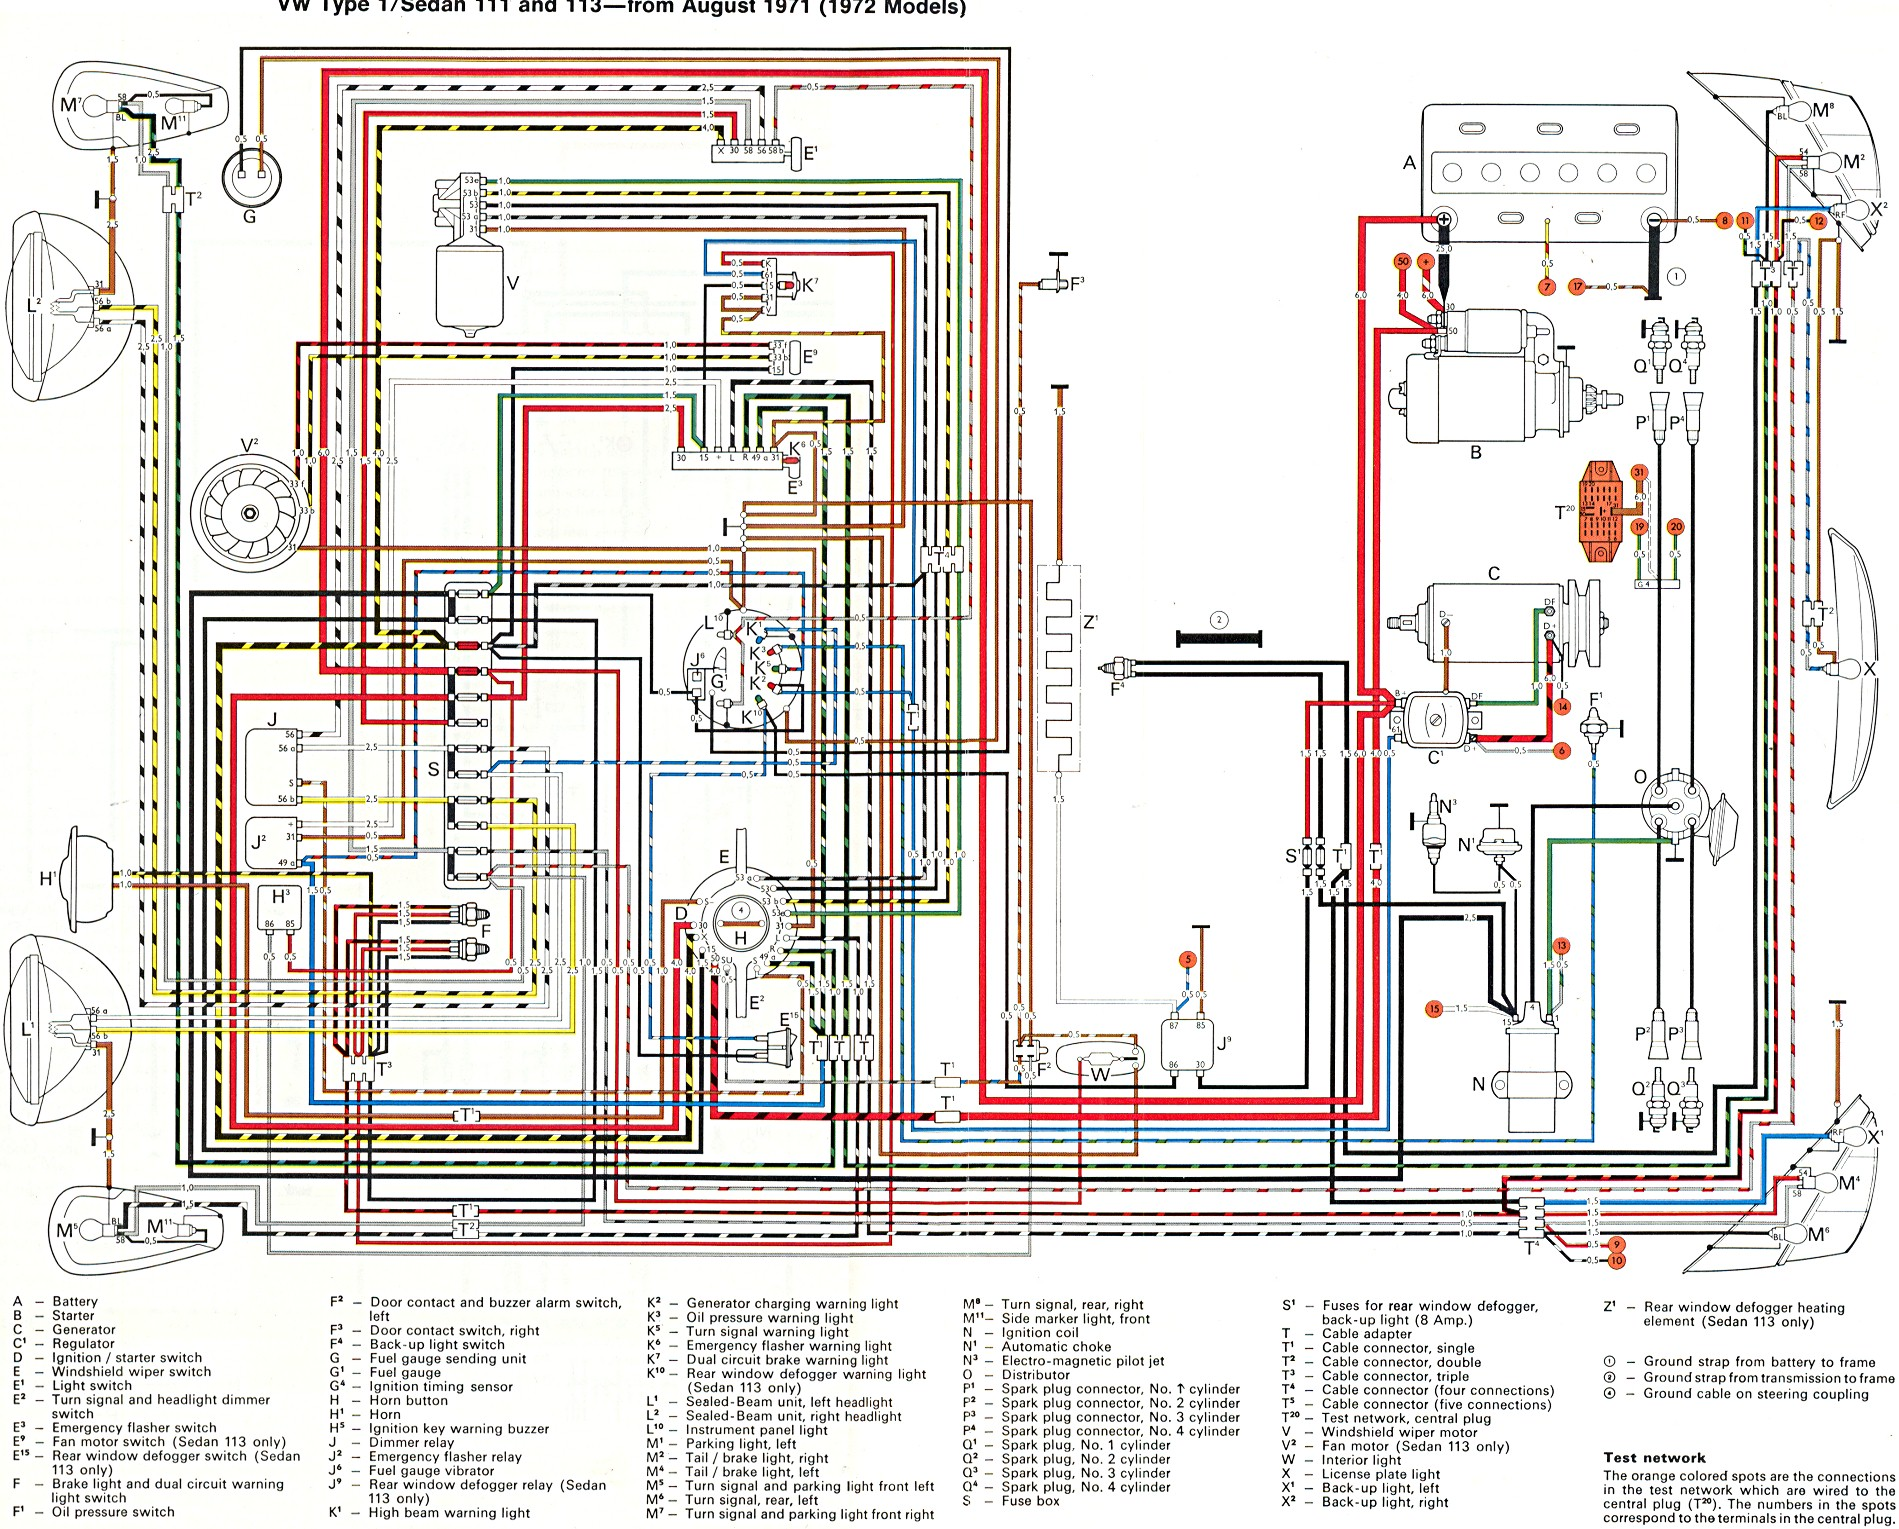 Viewtopicon 1979 Vw Beetle Fuel Injection Wiring Diagram